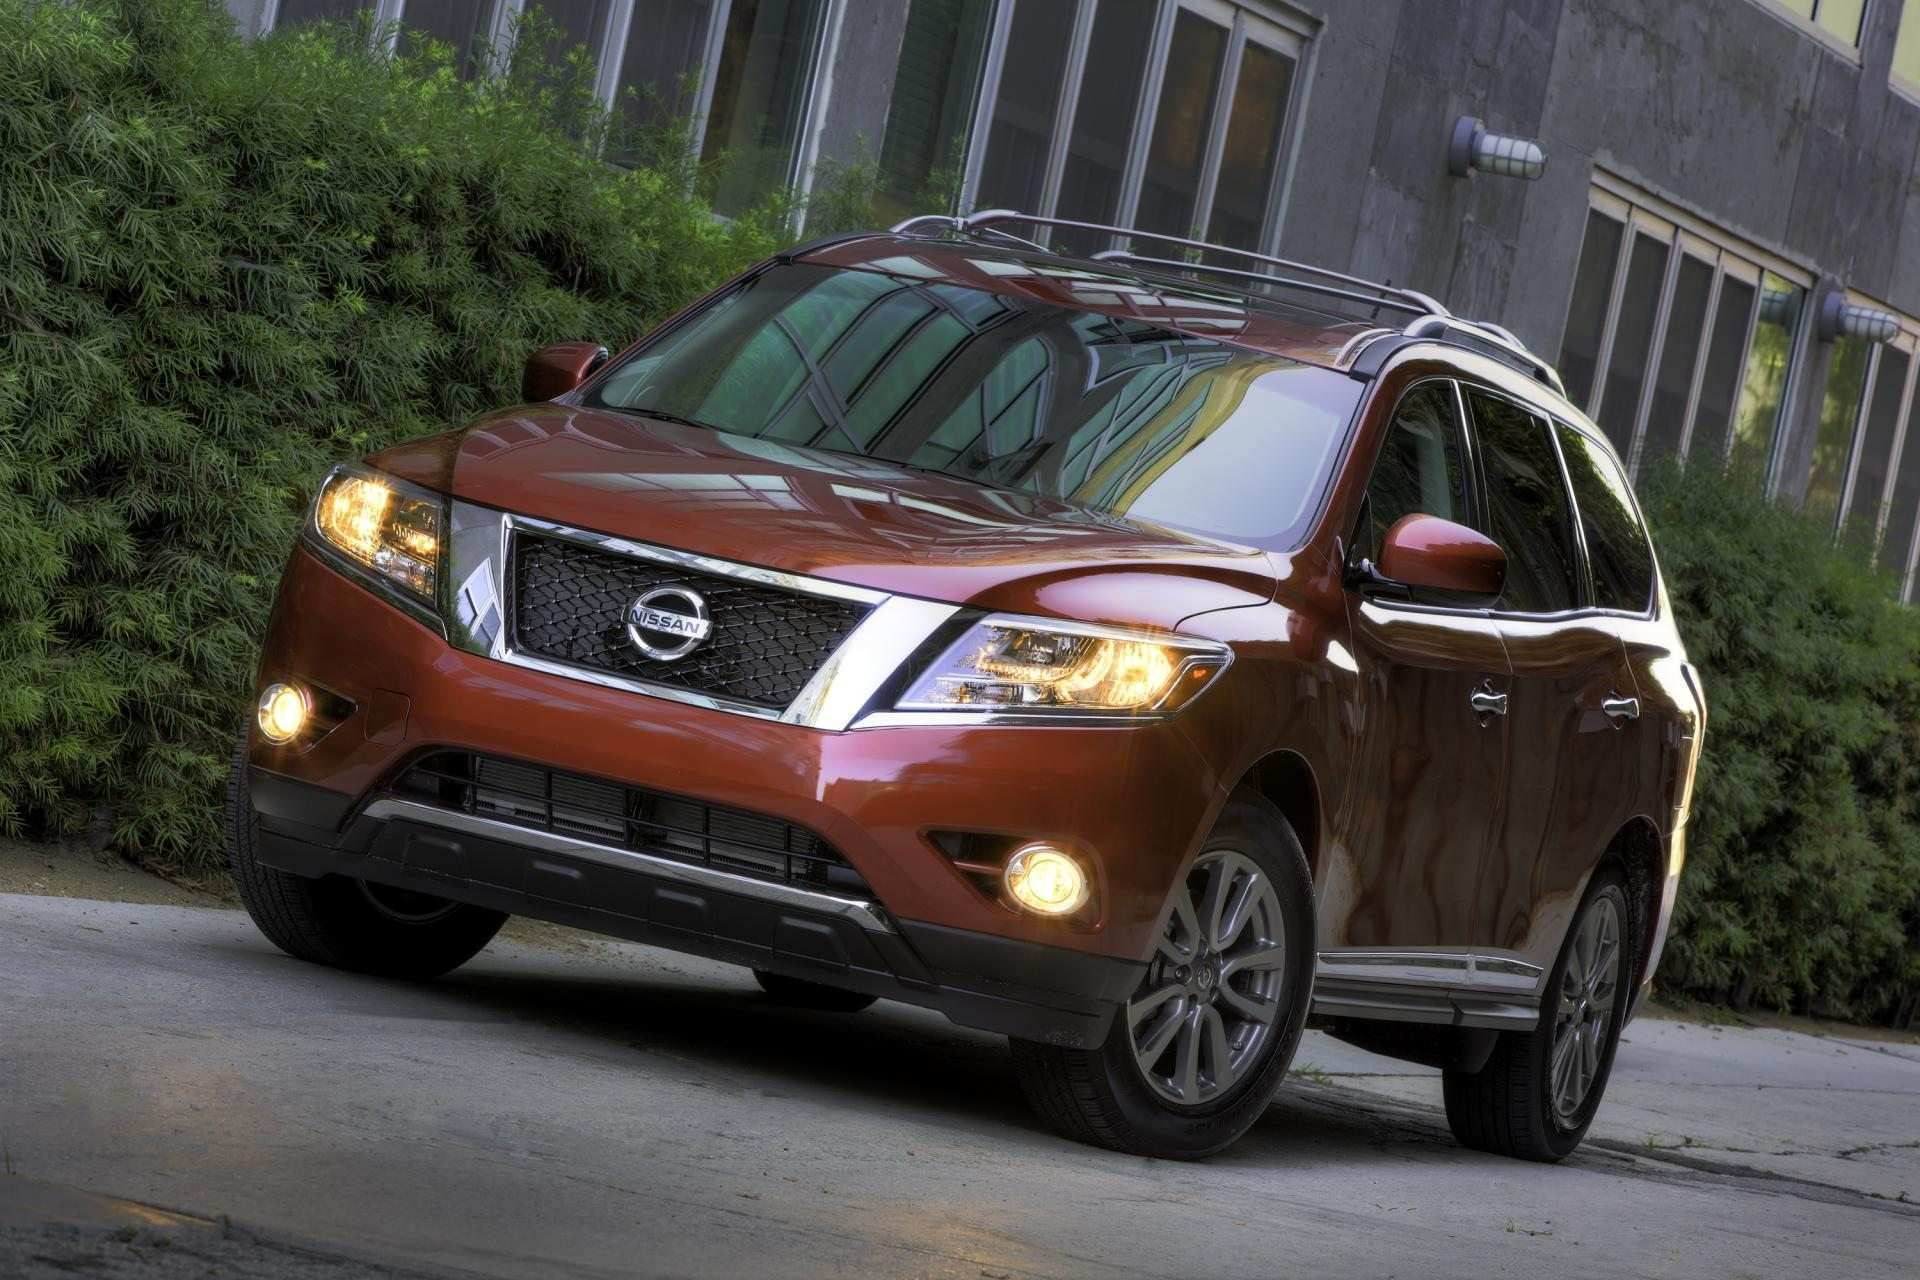 51 New 2020 Nissan Pathfinder Hybrid Price